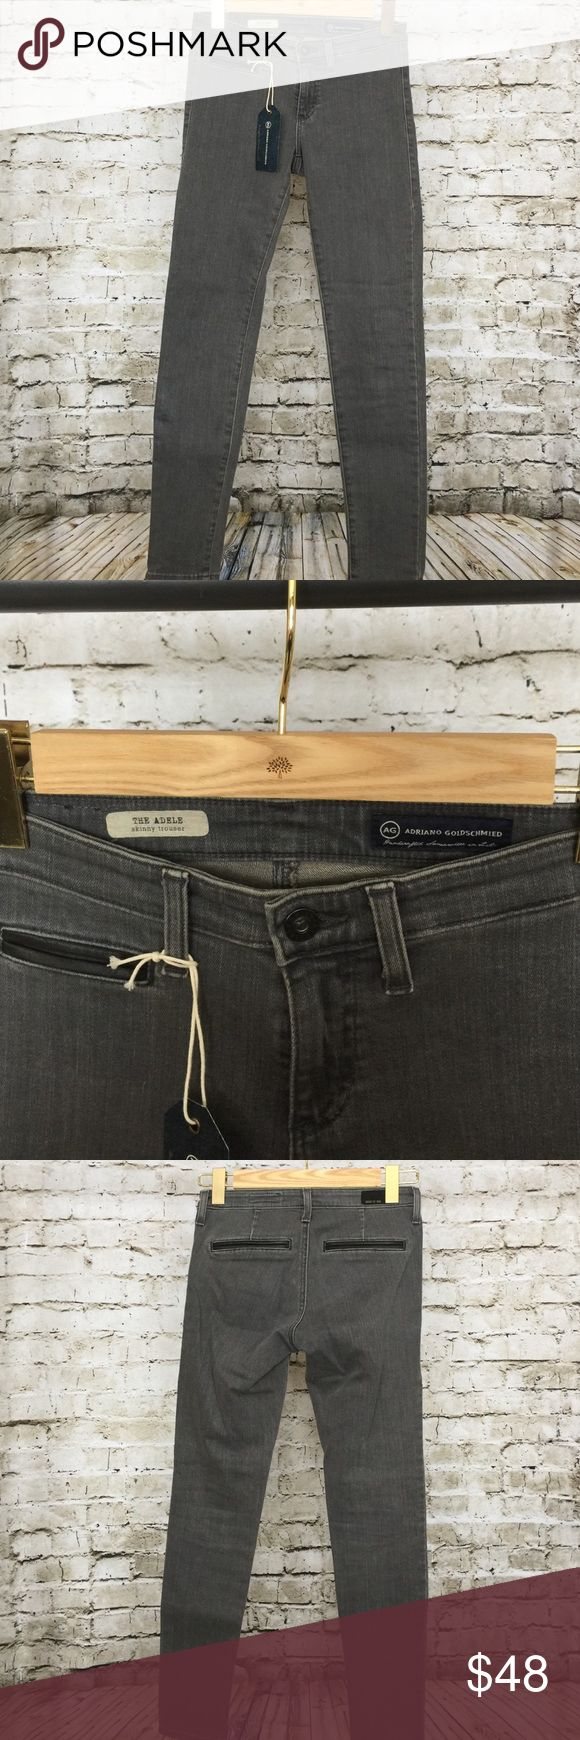 """AG Adele Skinny Trousers in Slate Size 26 AG Adele Skinny Trousers in Slate Size 26. Leather trim in front and back pockets. Purchased at a AG Warehouse sale and marked """"Irregular"""" on inside. 29"""" inseam. I have looked them over and can find no flaws to deem them irregular. AG Adriano Goldschmied Jeans Skinny"""